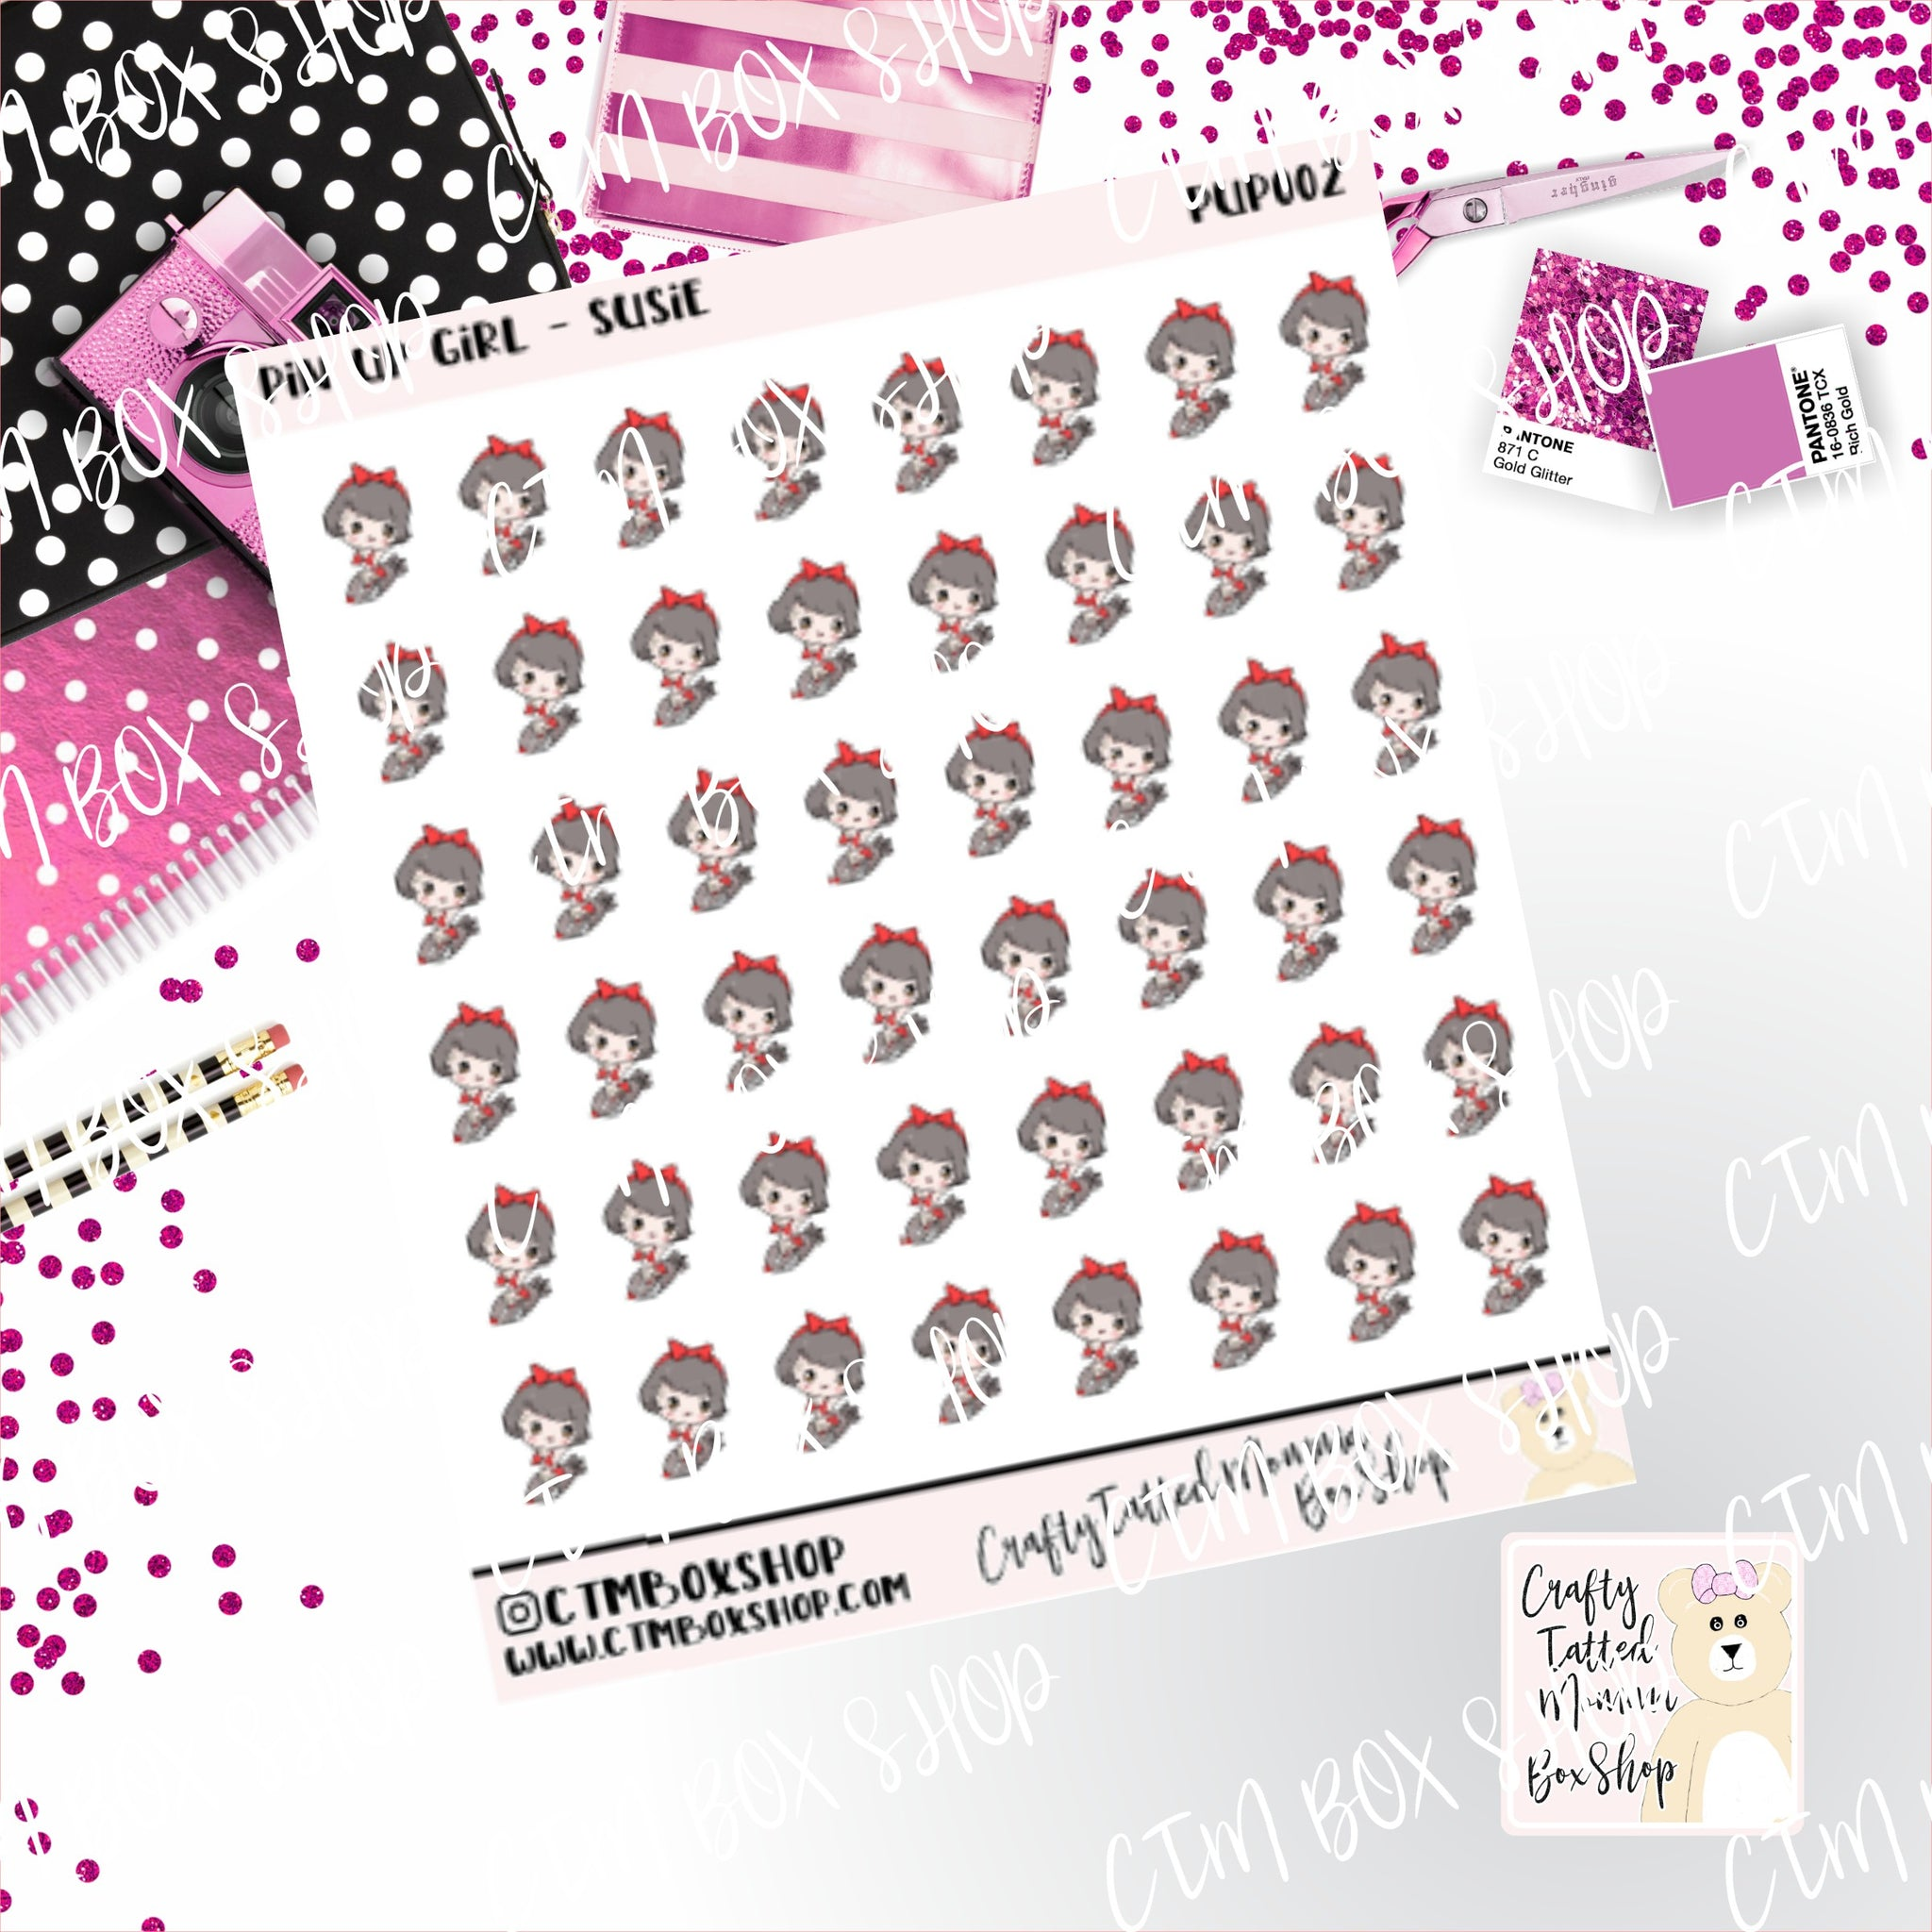 Pin Up Girl on Rocket Stickers   Character Stickers   Planner Stickers   Functional Stickers   Deco Stickers